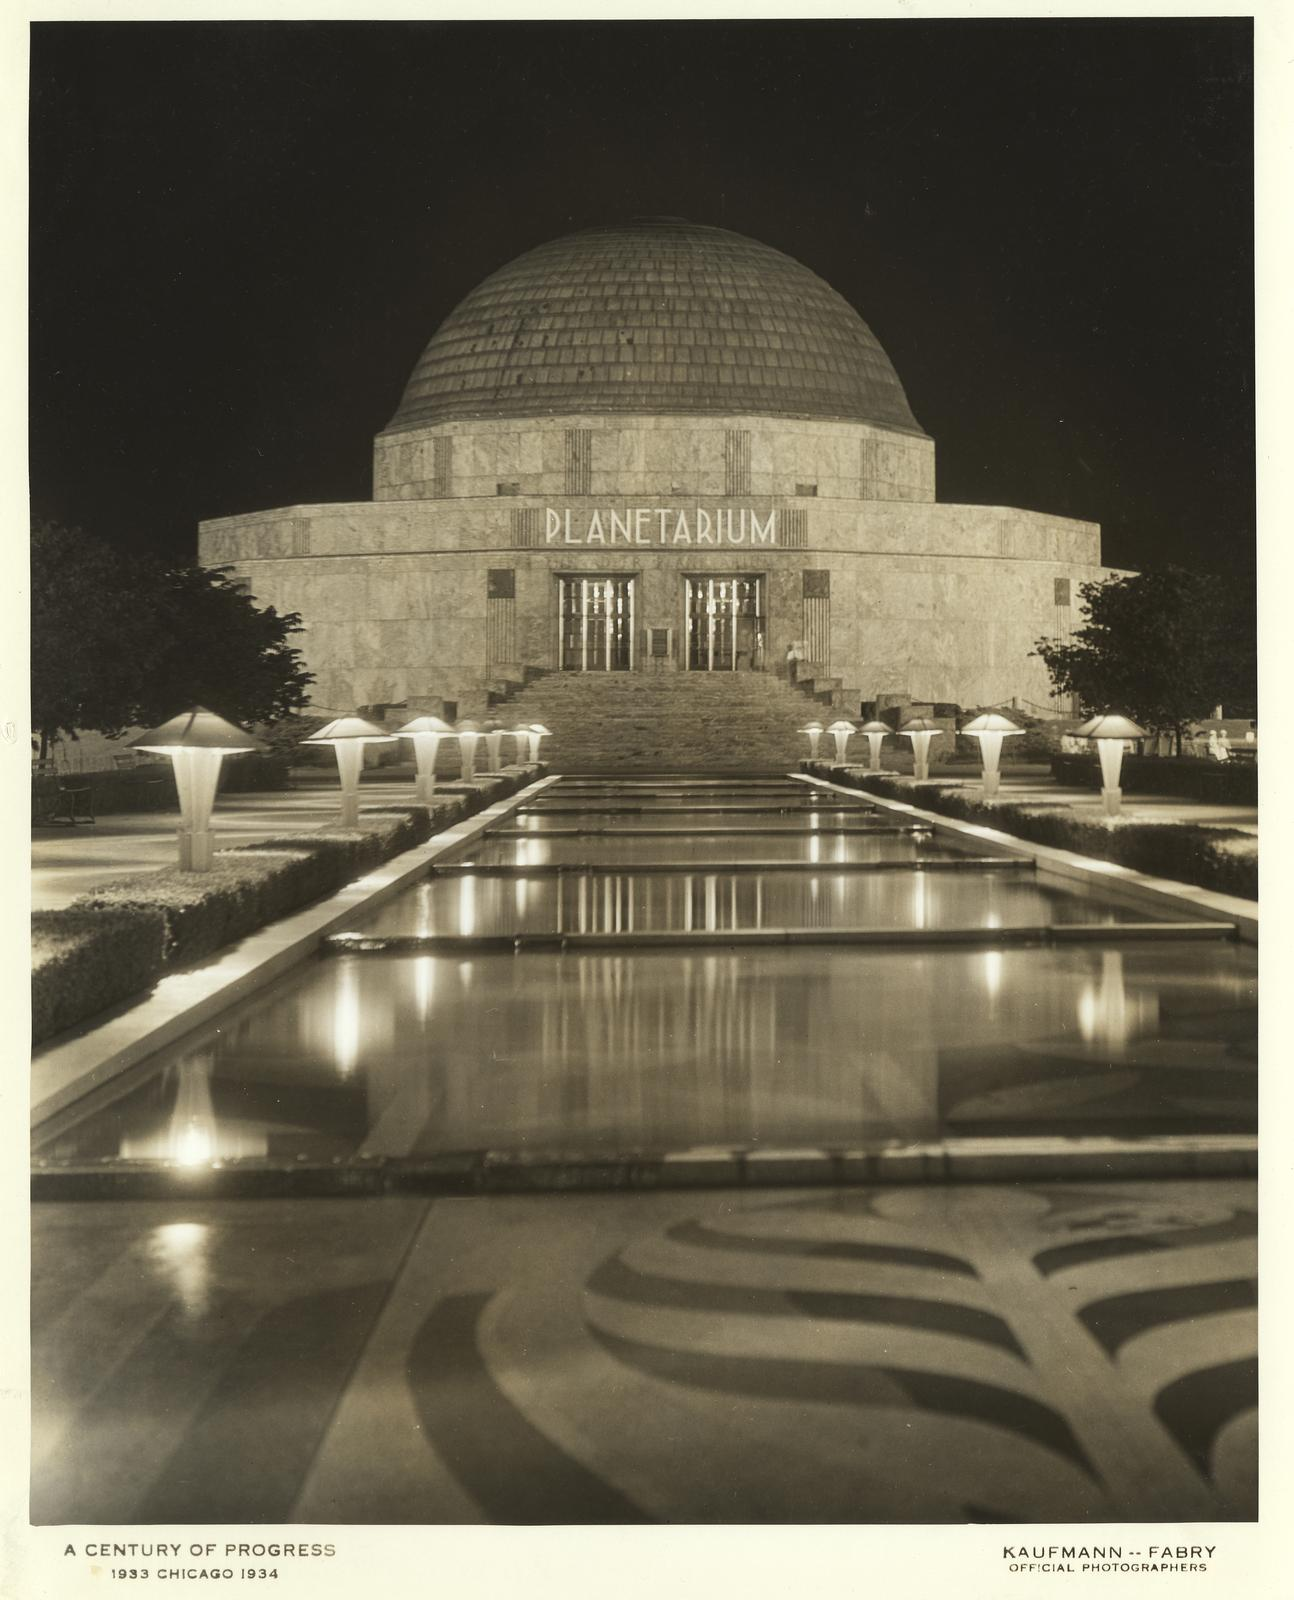 The Adler Planetarium at the Century of Progress International Exposition, 1933-1934.